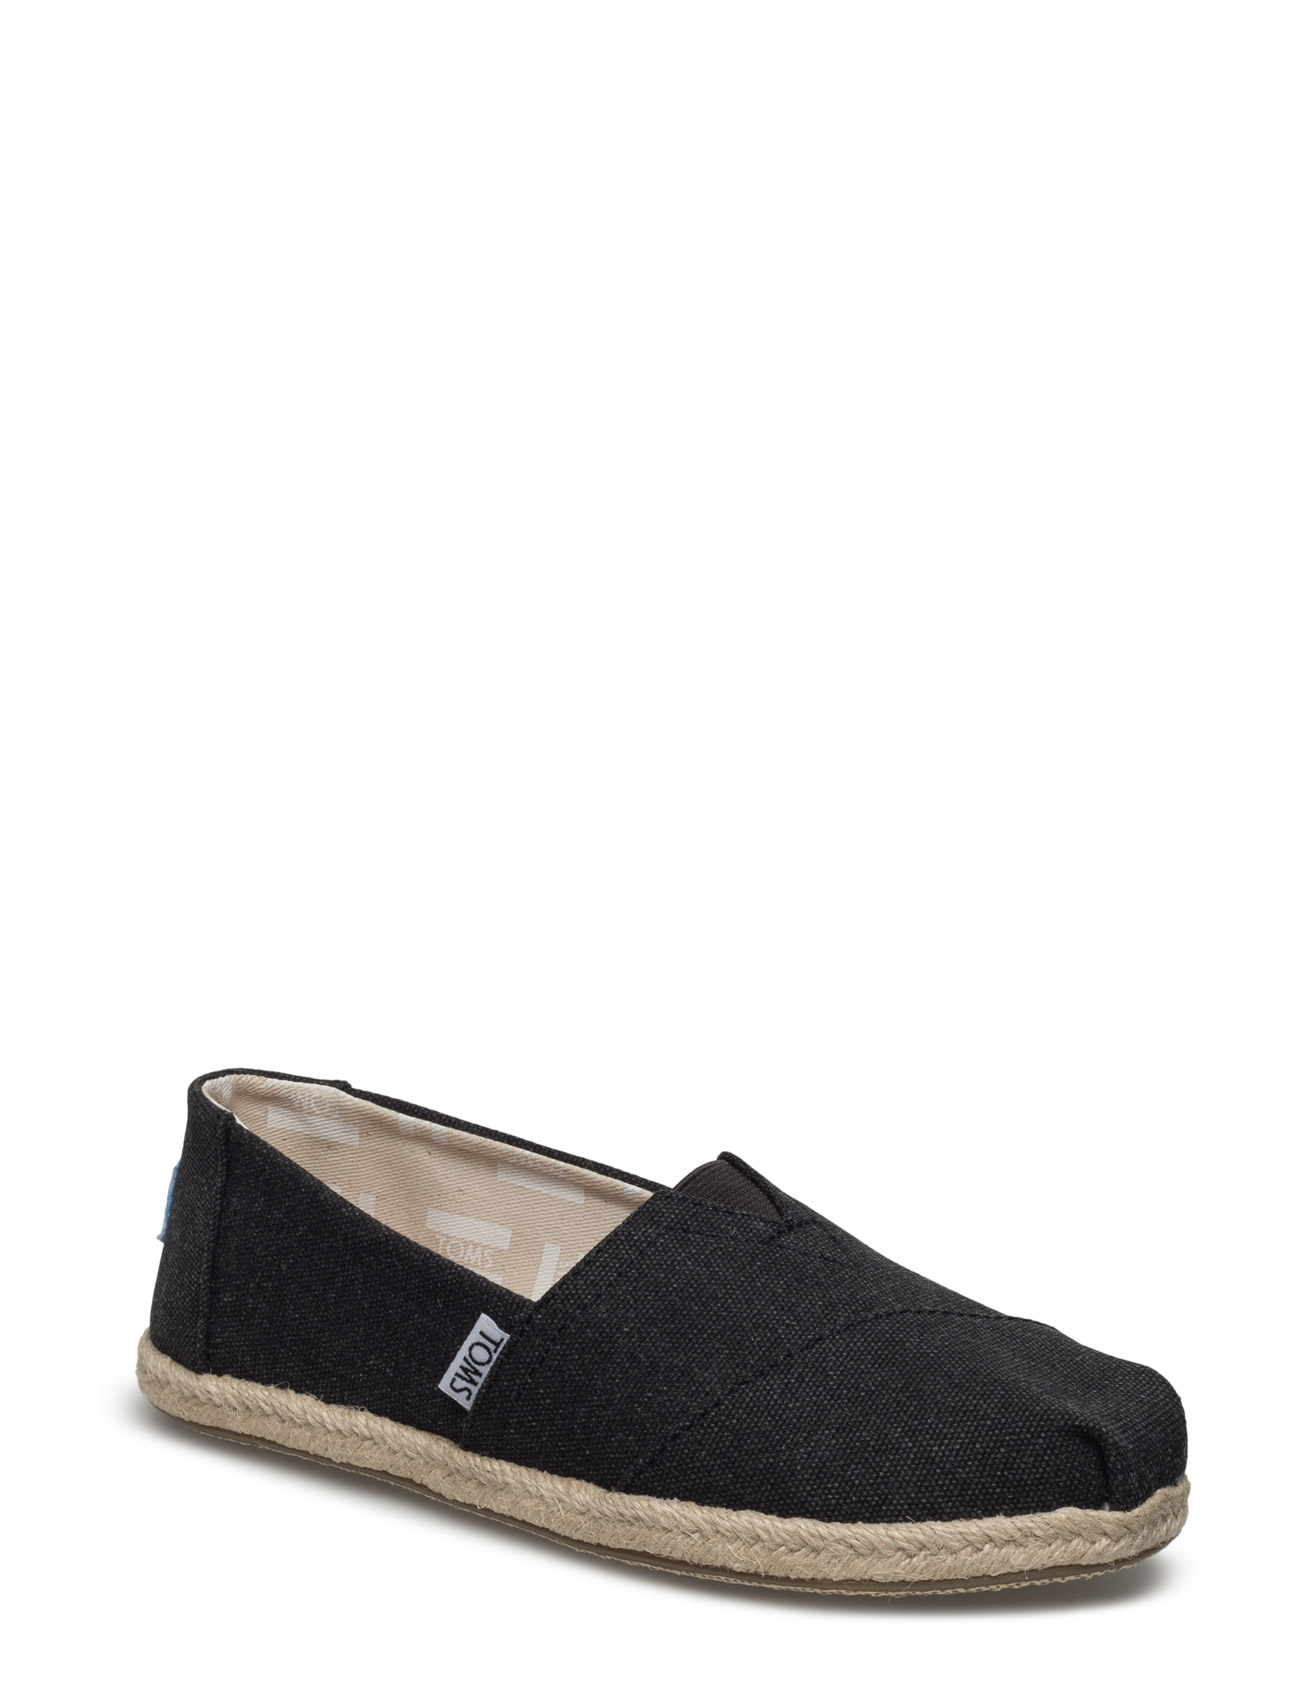 Black Washed Canvas Rope S Alpargata TOMS Espadrillos